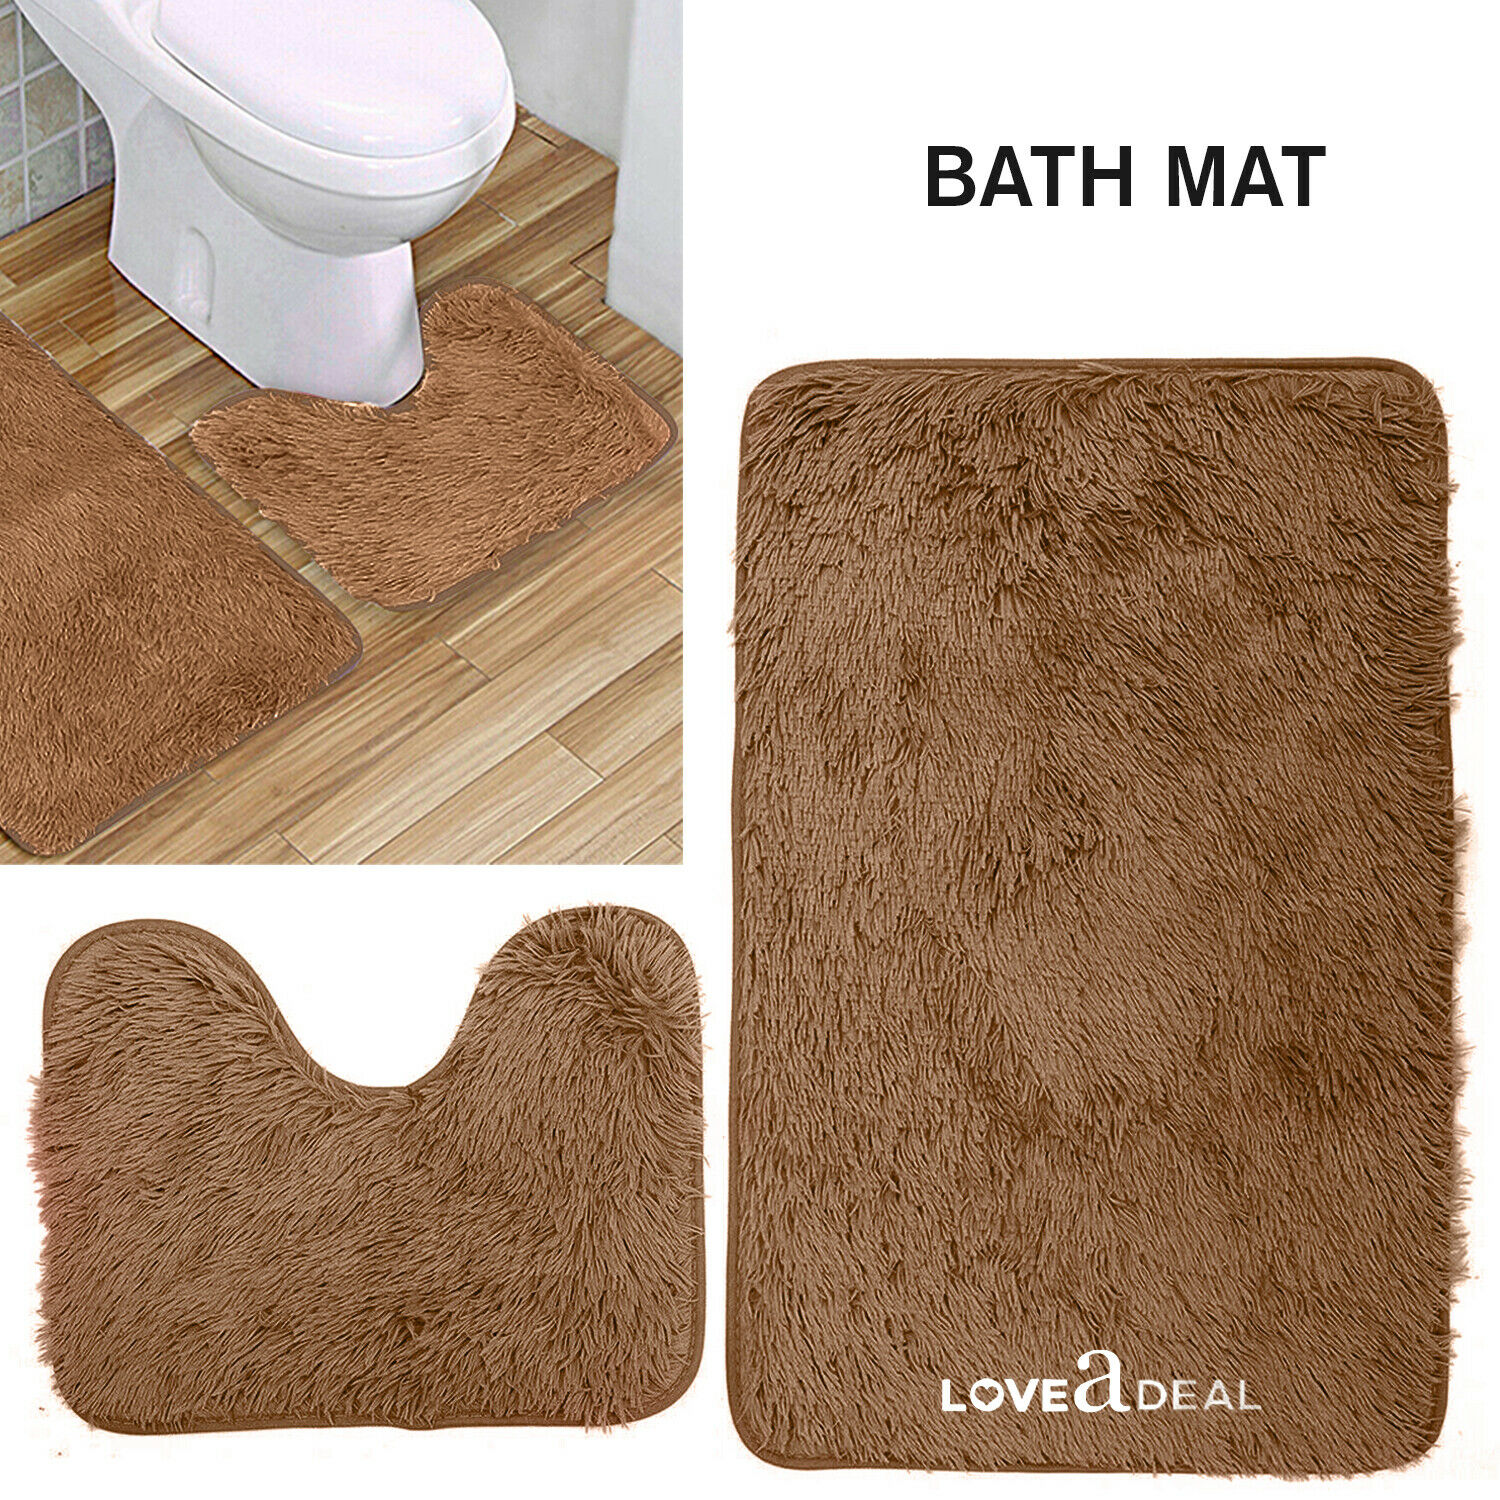 Shaggy Design Bath Mat Set Non Slip Pedestal Mat Toilet Bathroom Rugs Tan Brown Ebay